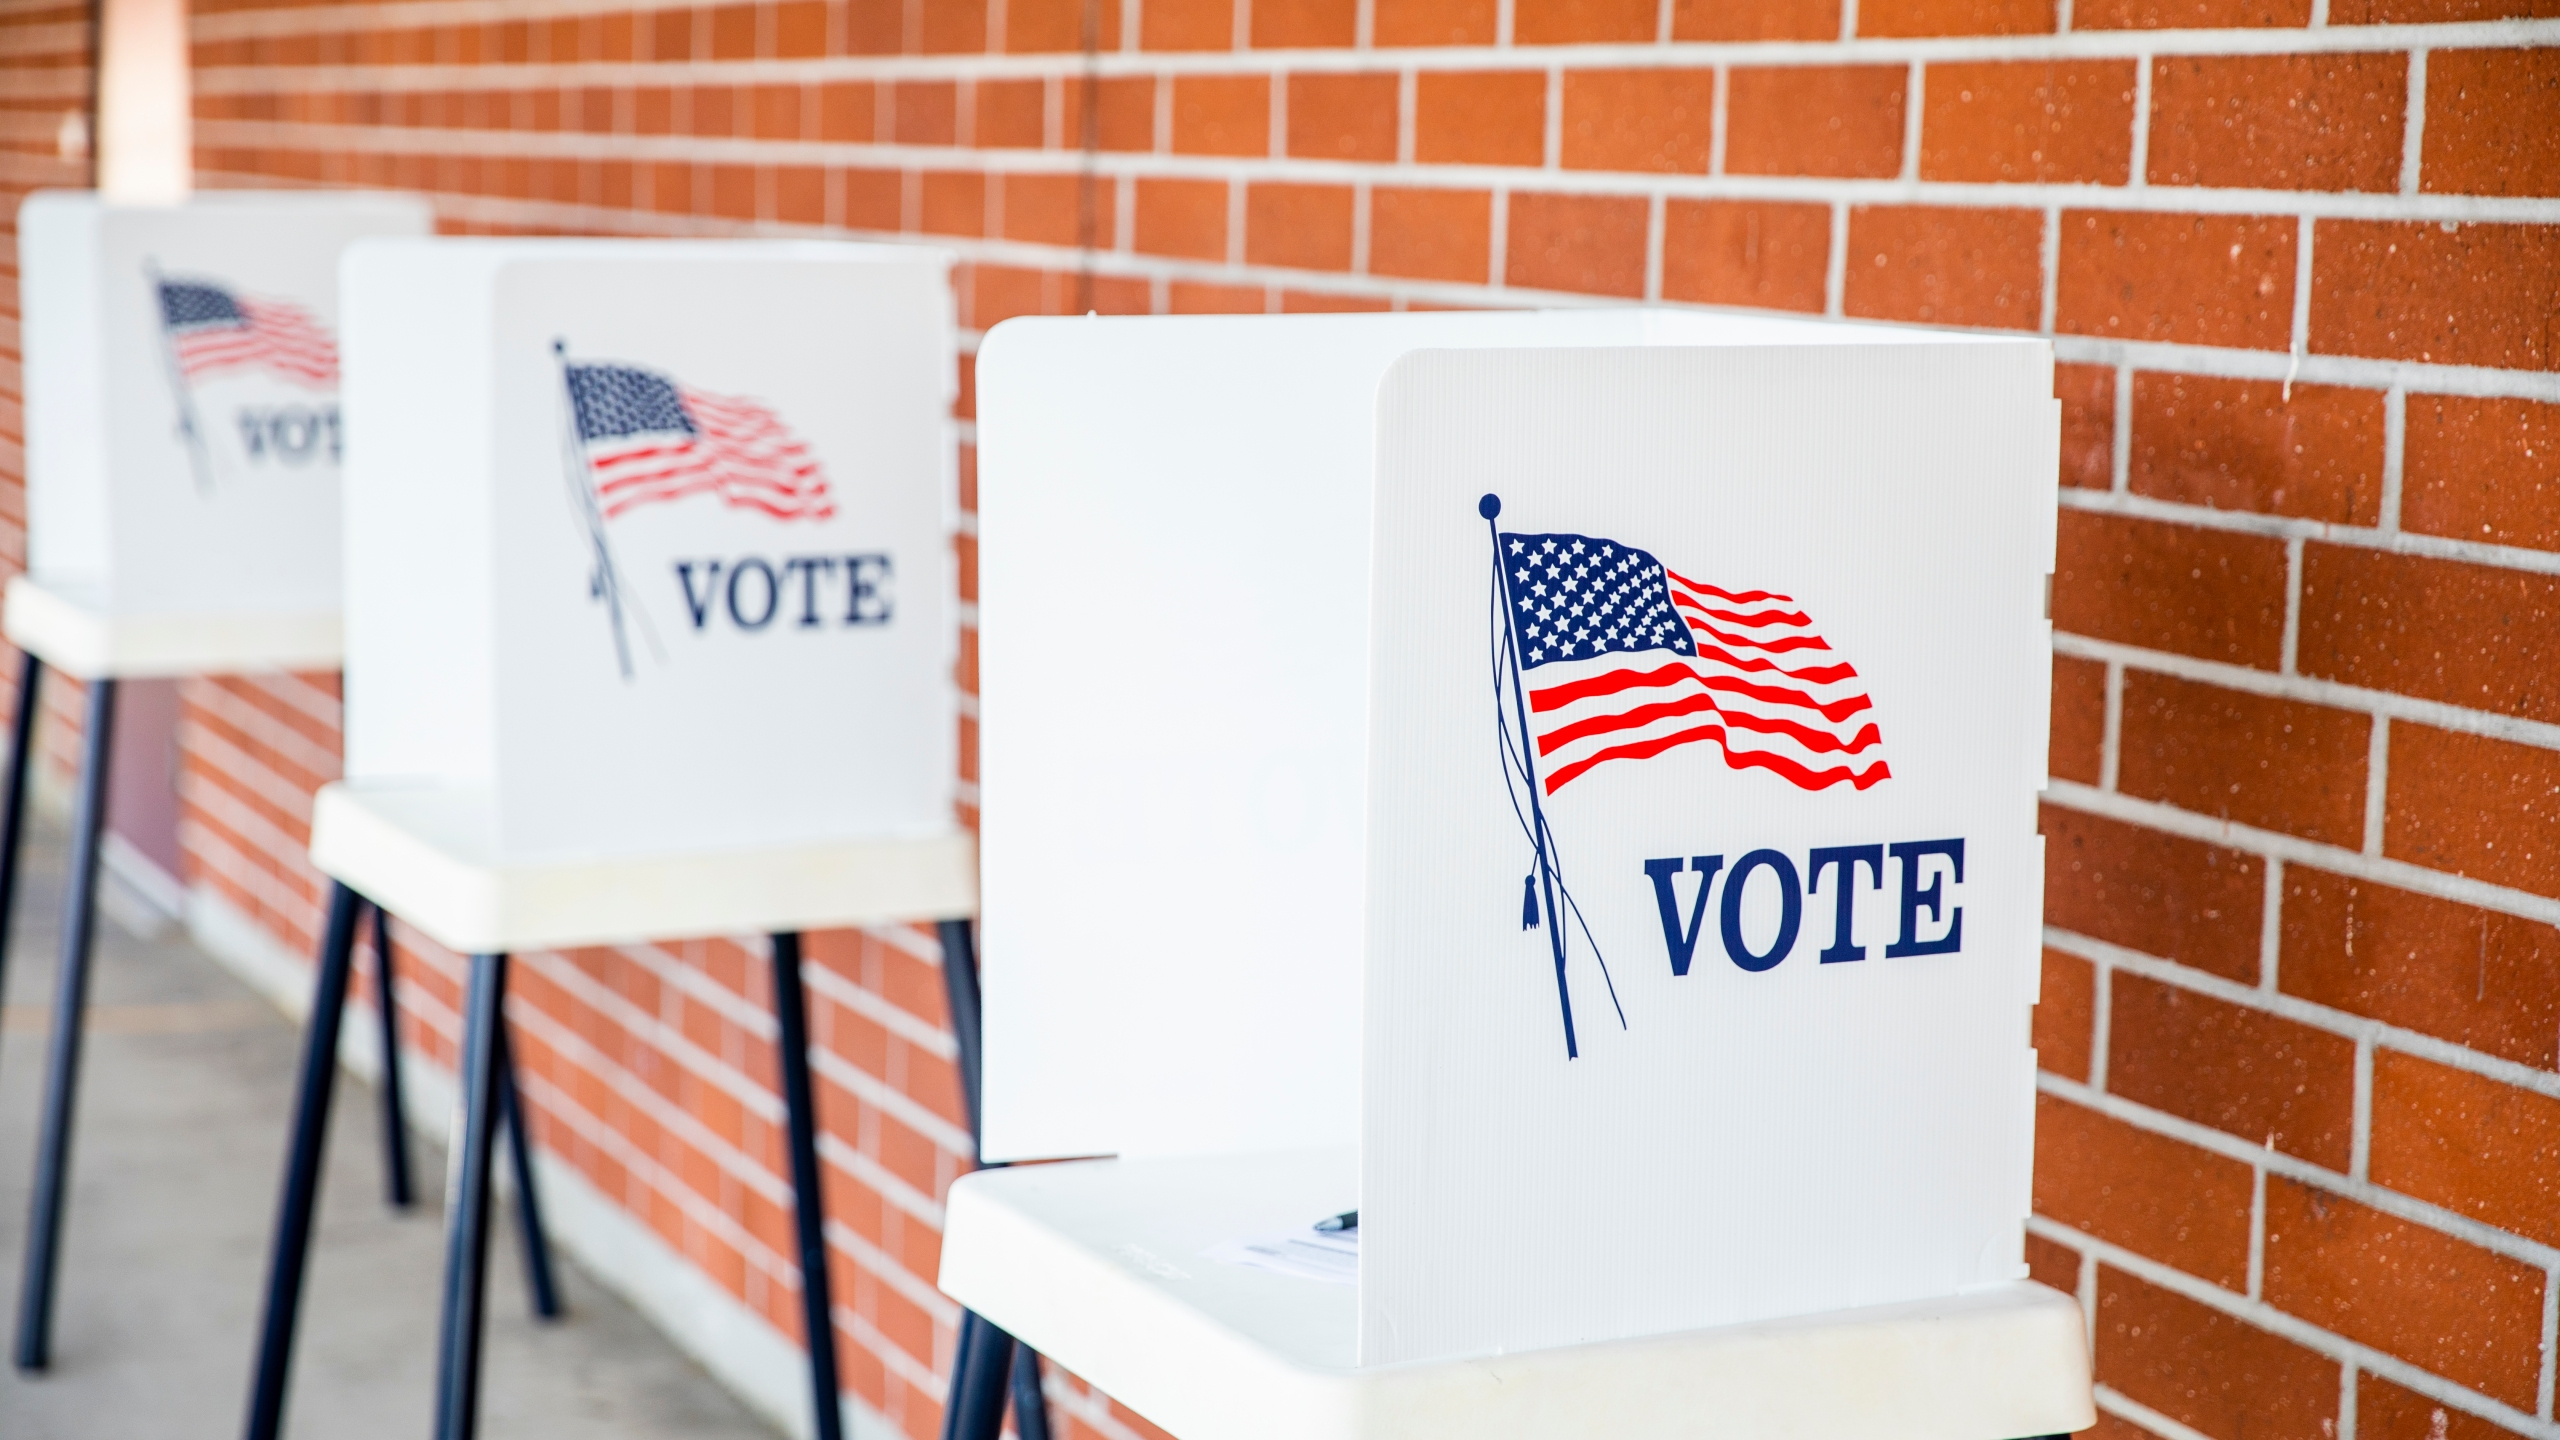 A polling location station is seen in a file photo. (Credit: iStock / Getty Images Plus)